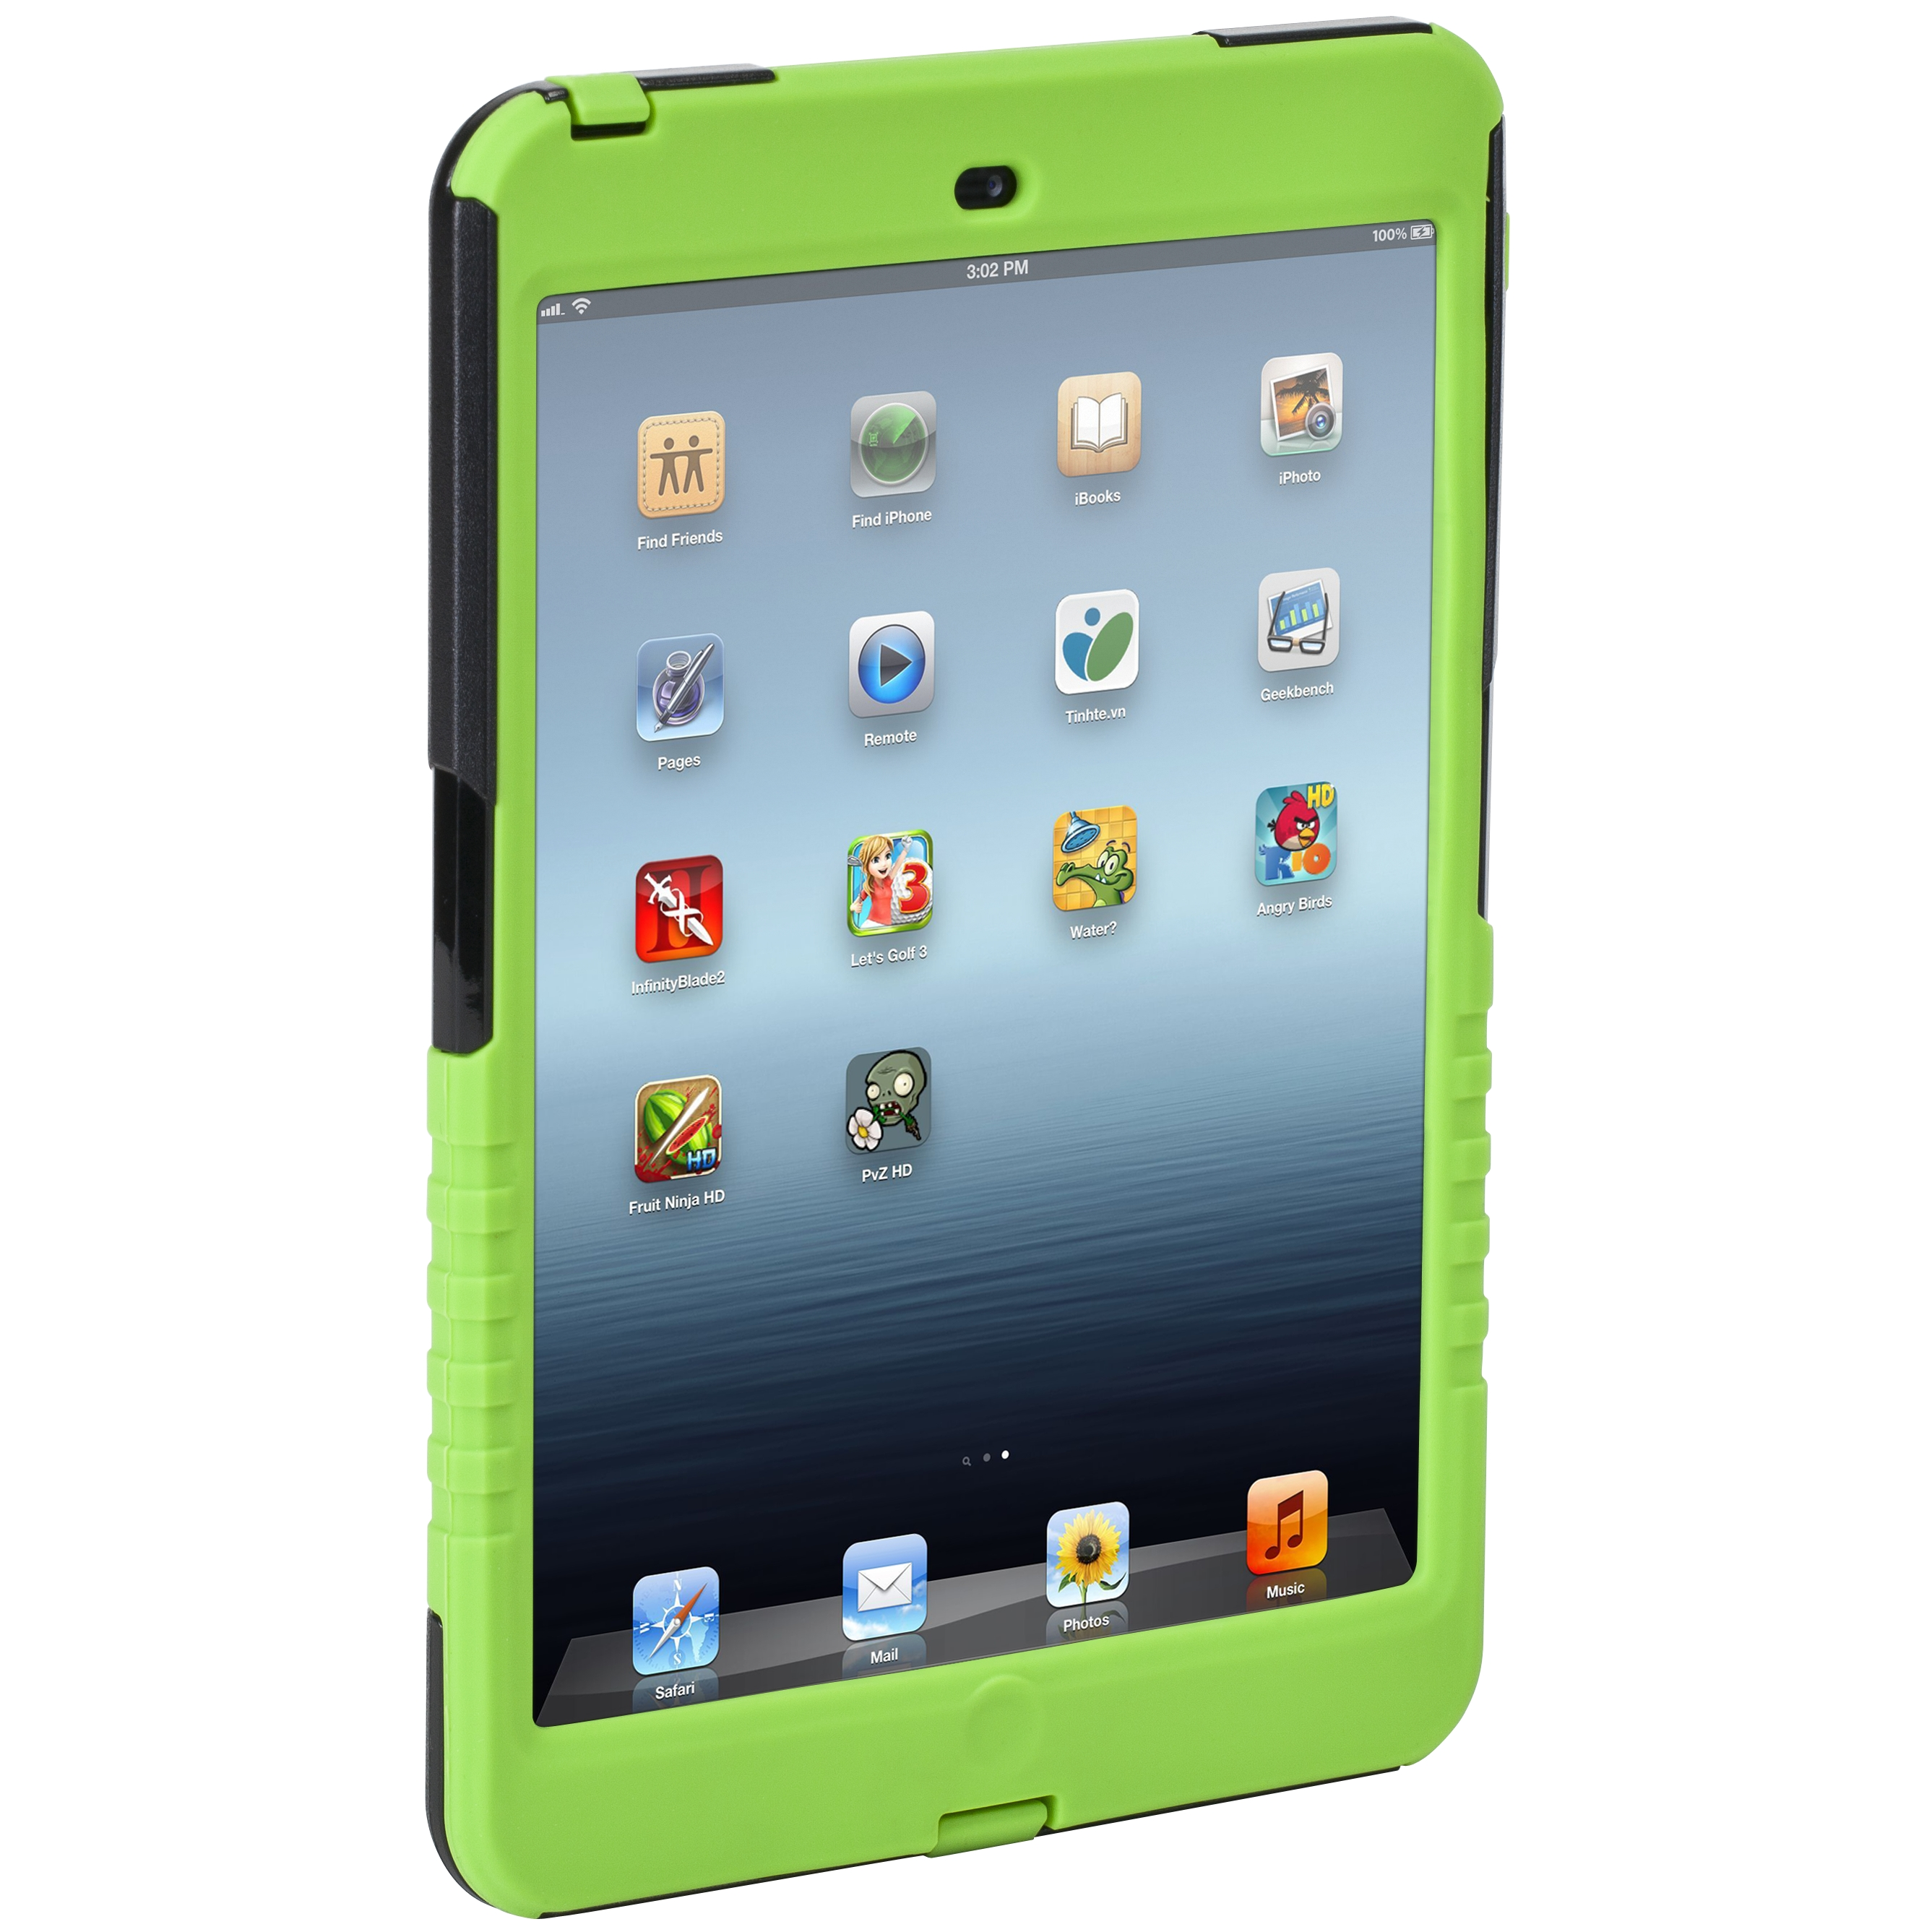 Safeport 174 Rugged Case For Ipad Mini Thd04705us Green